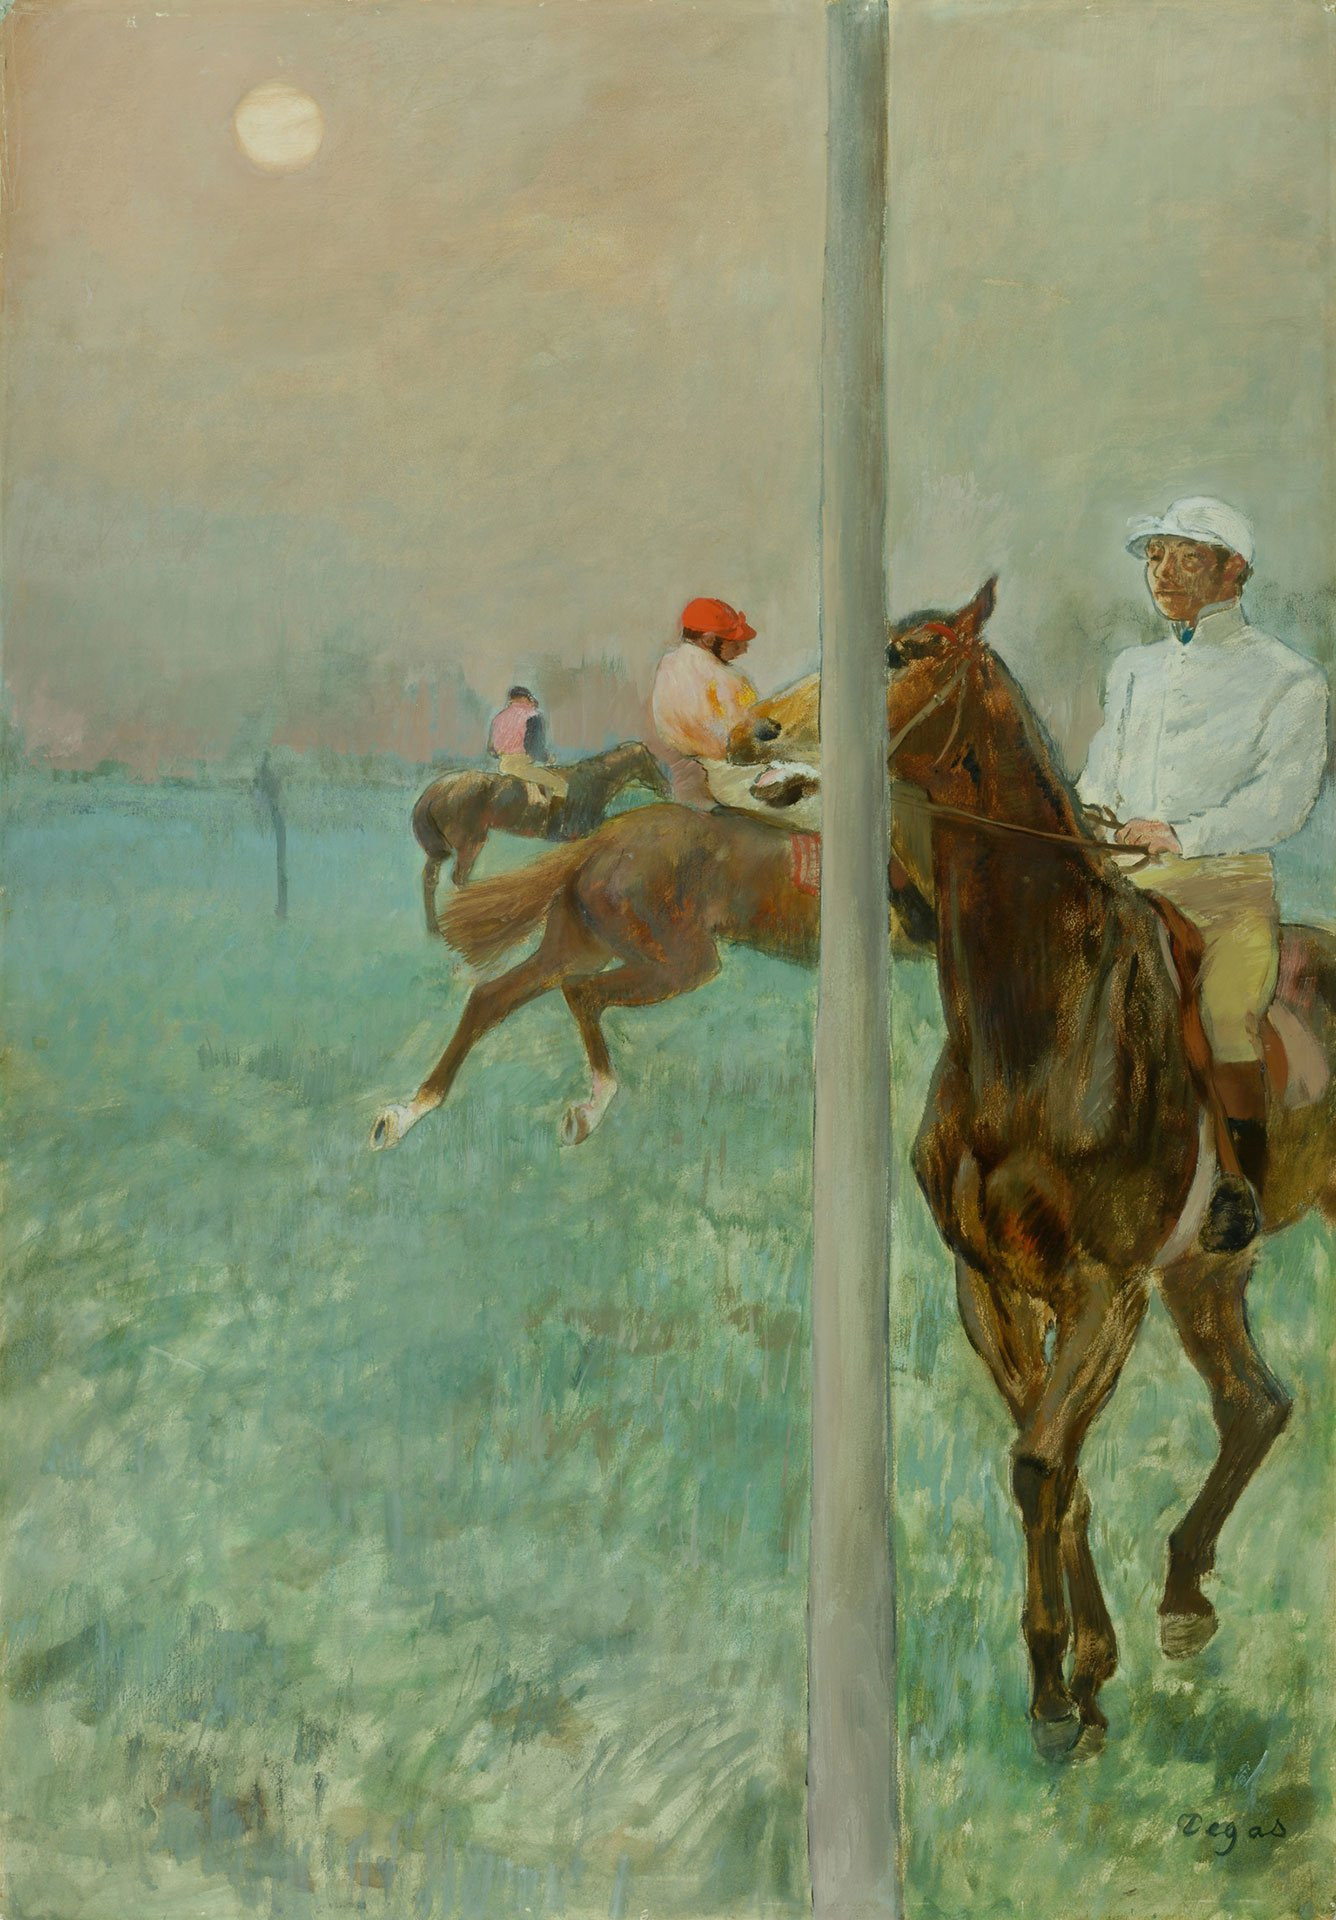 Edgar Degas: Jockeys vor dem Rennen, 1878/79 © The Barber Institute of Fine Arts, University of Birmingham